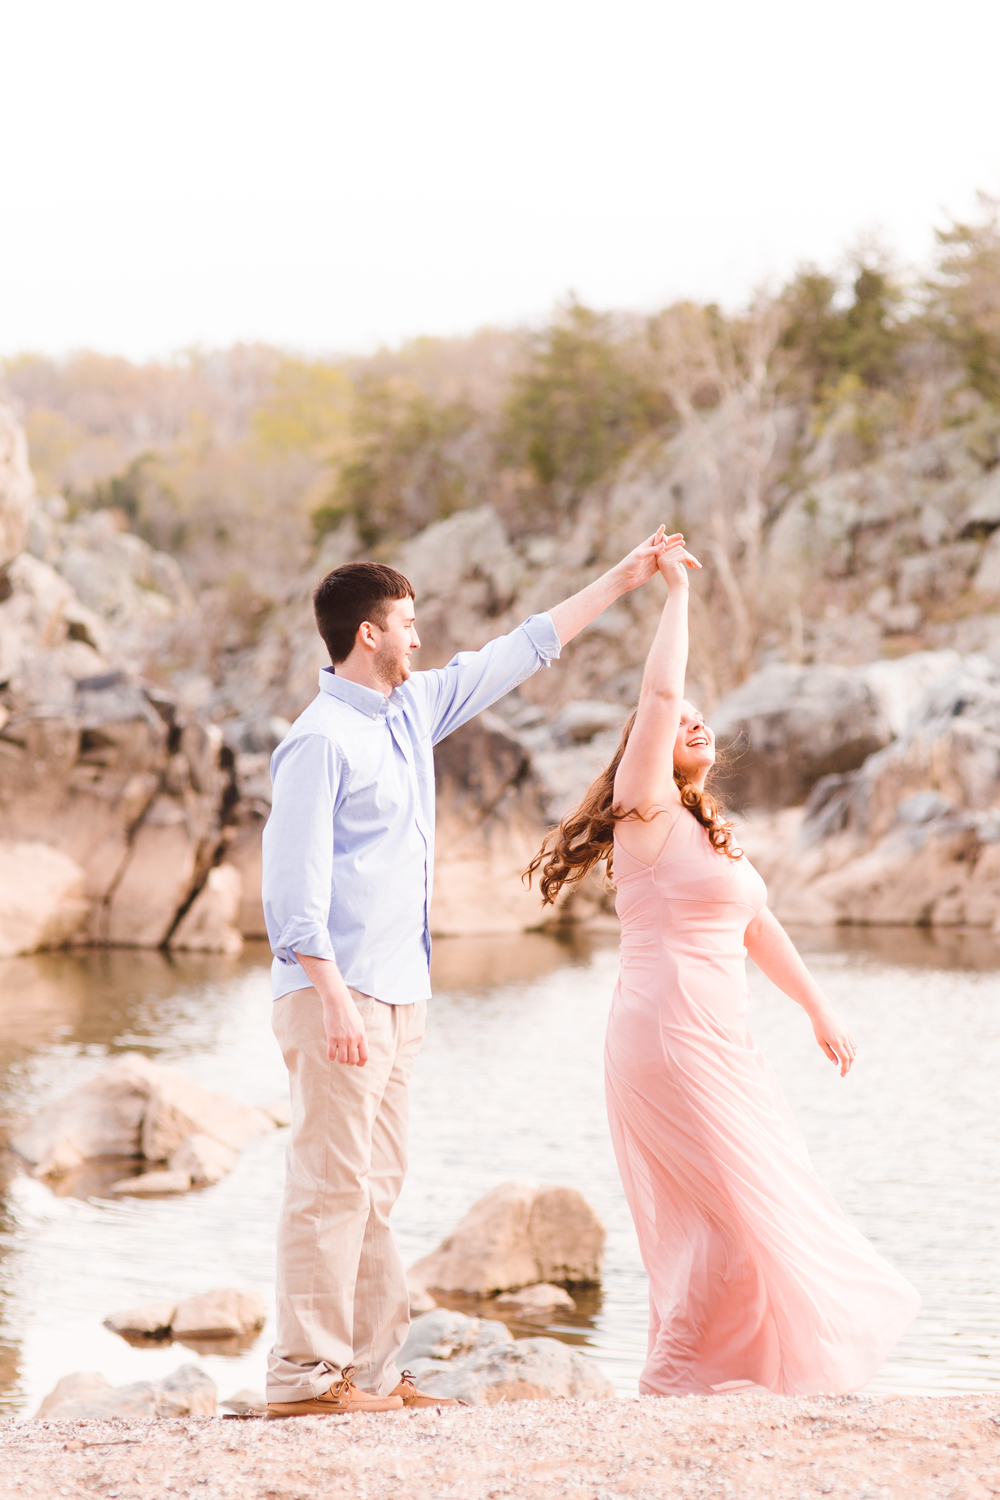 boho-inspo-maryland-engagement-session-great-falls-md-billy-goat-trail-brooke-michelle-photography-70.jpg